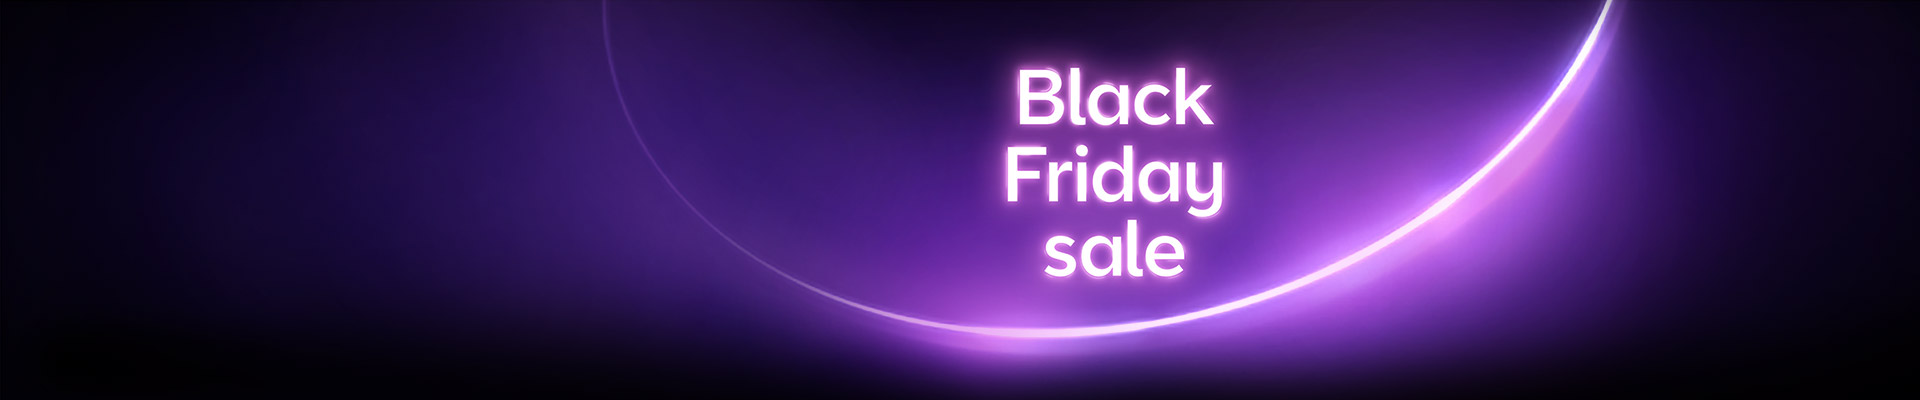 Black Friday sale with BT Mobile